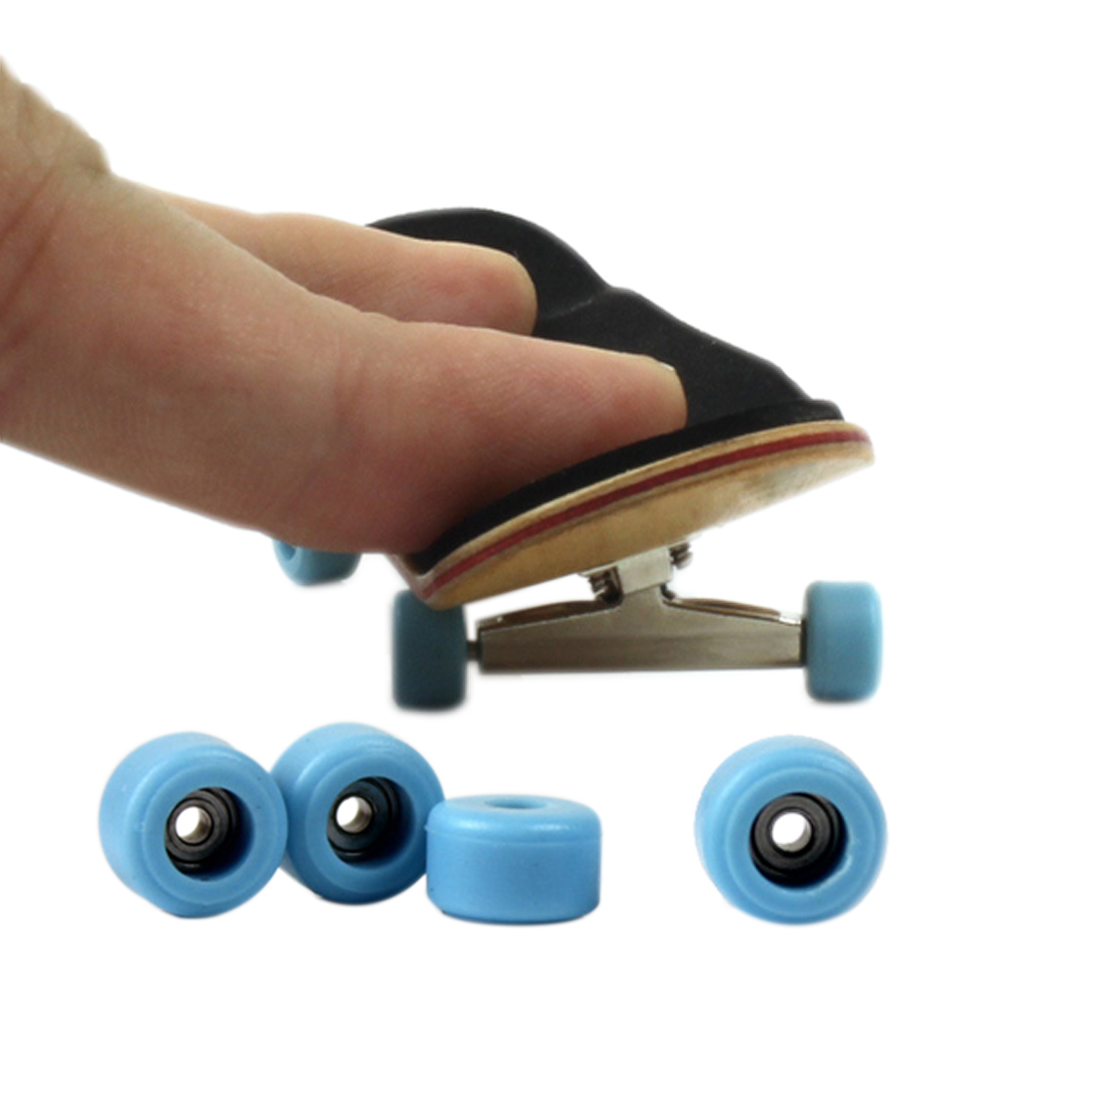 Professional Maple Finger Skate Board with Bearing Wheels Educational Toys Board Game Mini Skateboard for Children